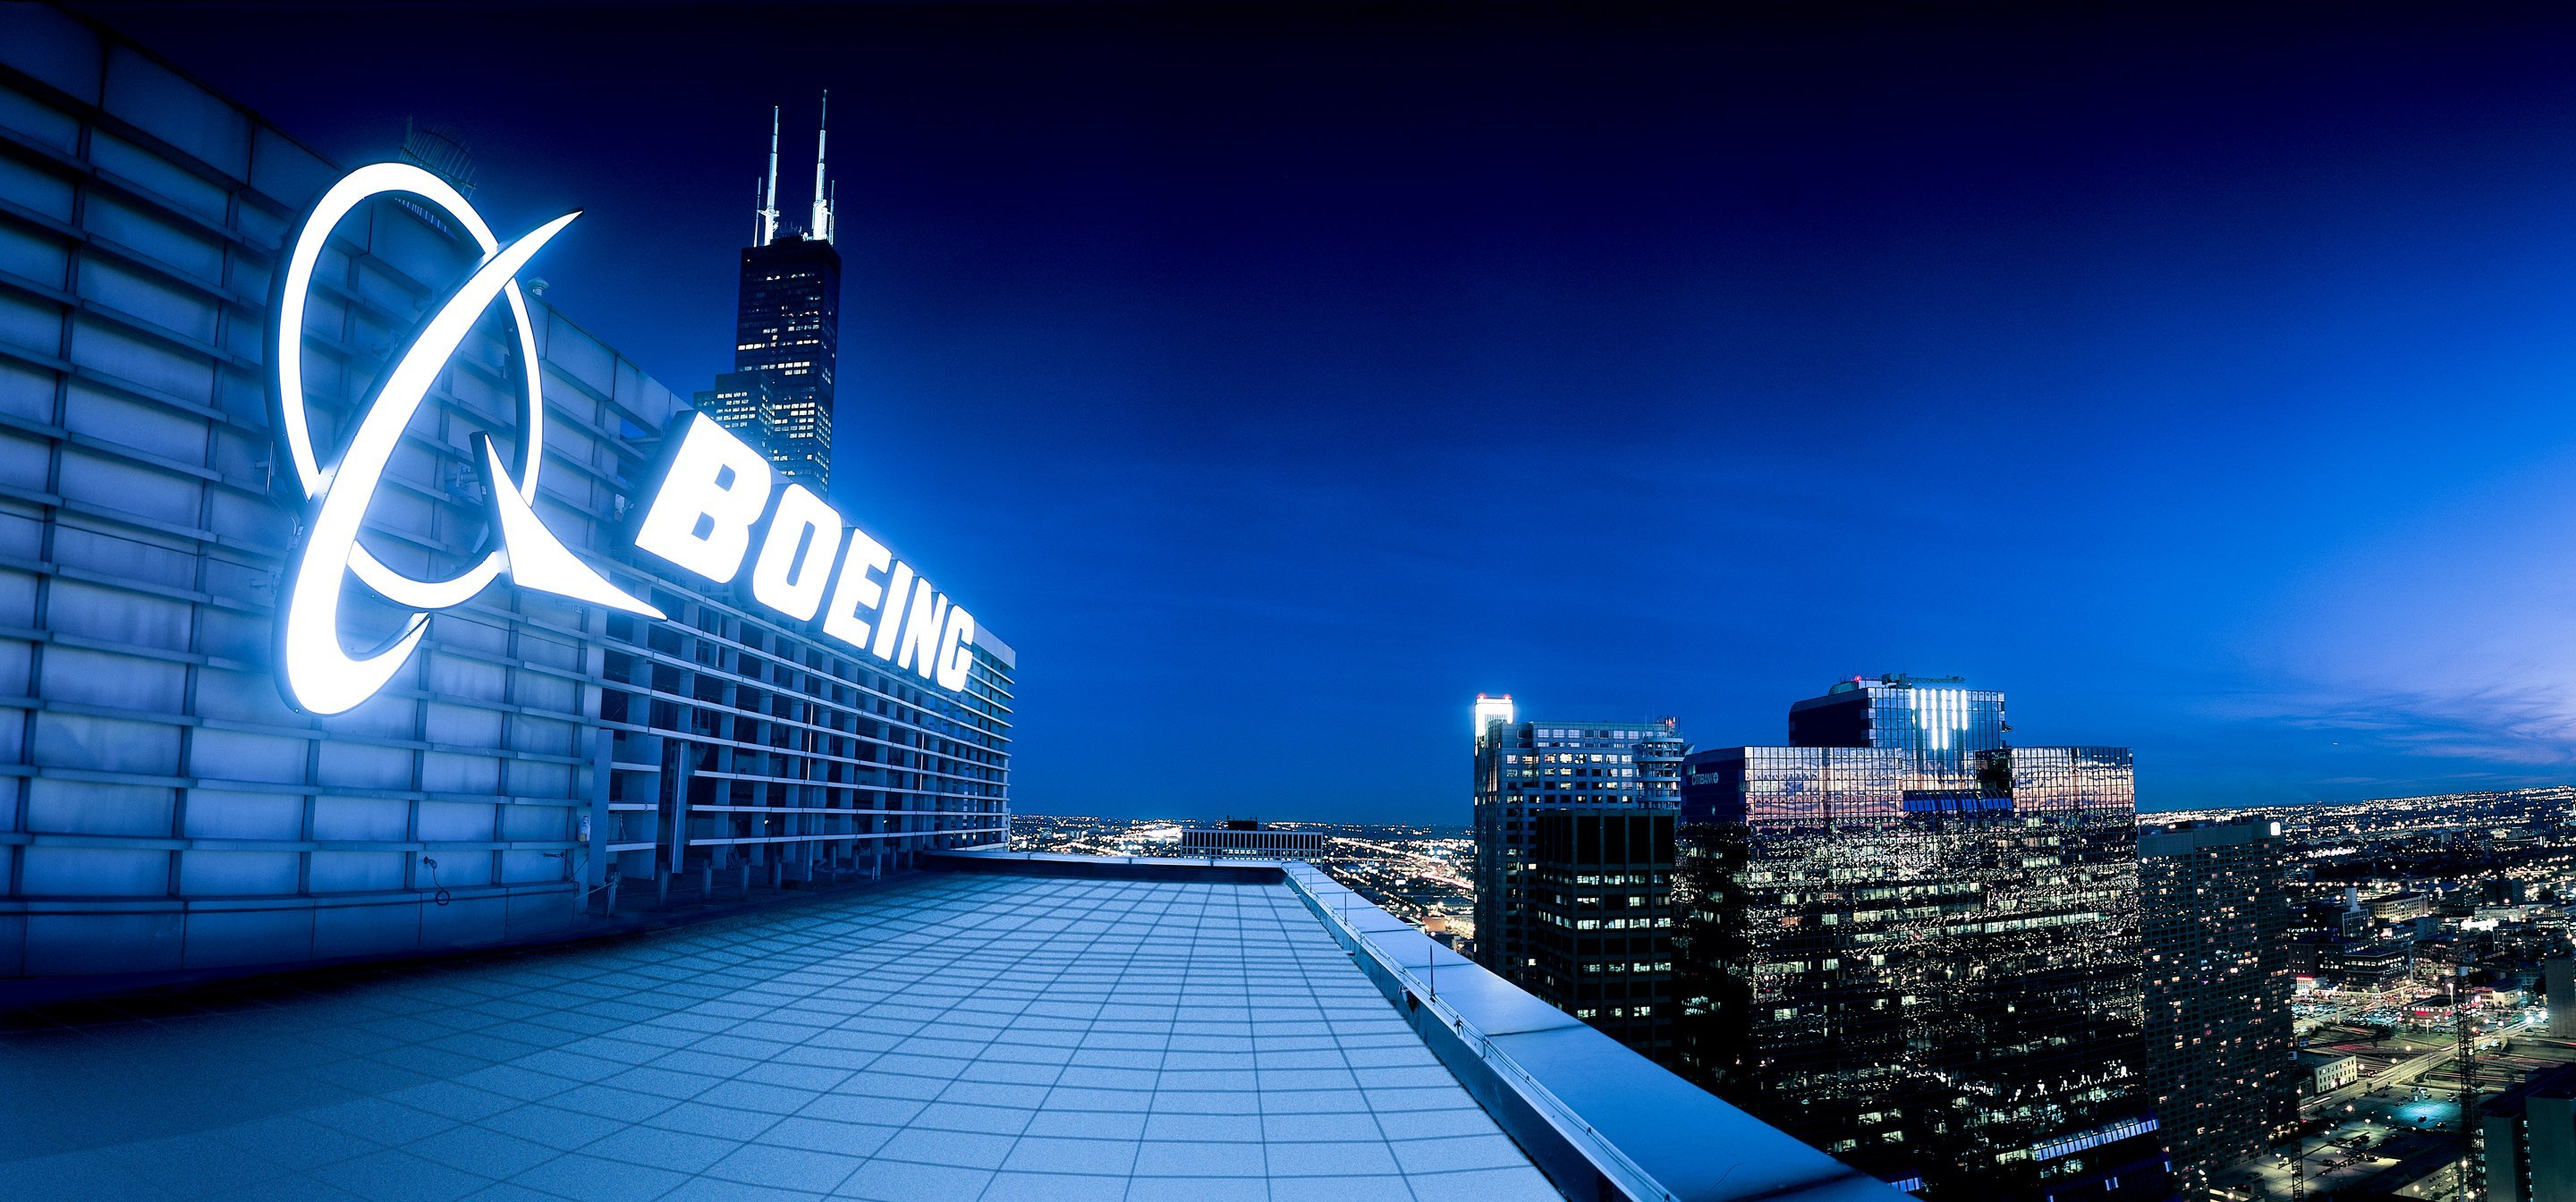 Boeing headquarters in Chicago (Credit: Beoing)